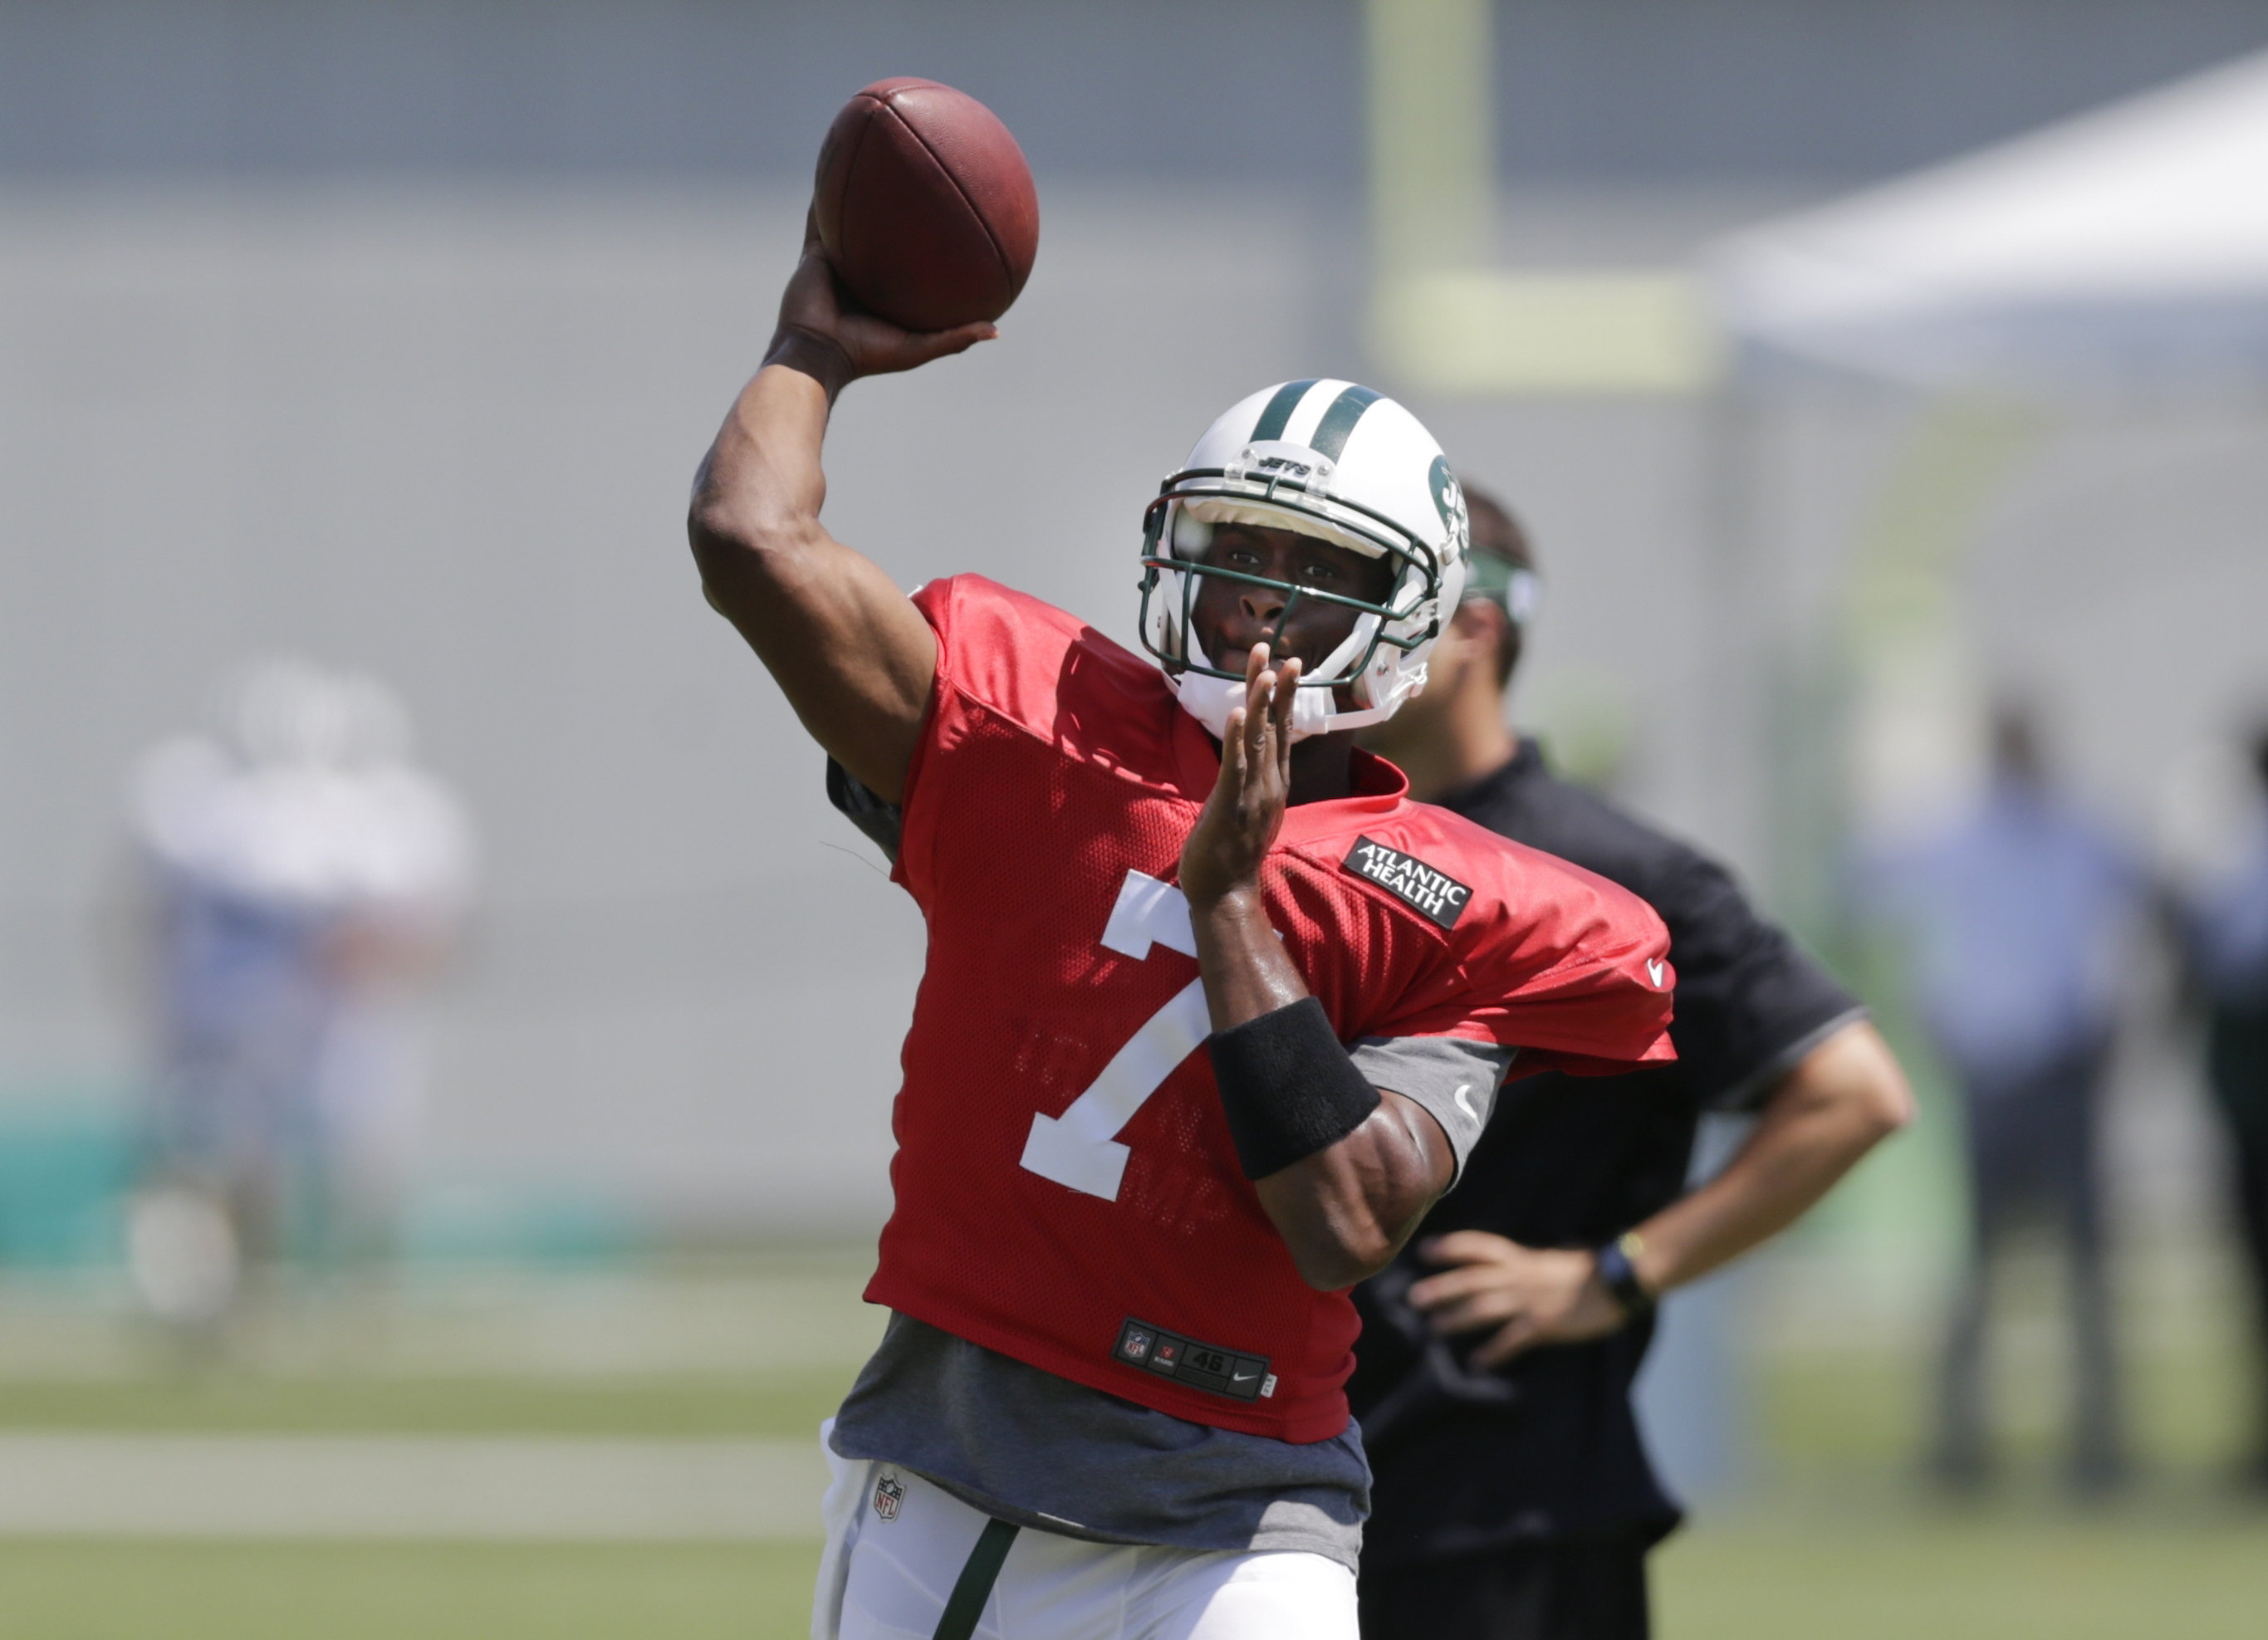 New York Jets quarterback Geno Smith (7) throws a pass during practice at NFL football  training camp, Wednesday, Aug. 5, 2015, in Florham Park, N.J. (AP Photo/Frank Franklin II)